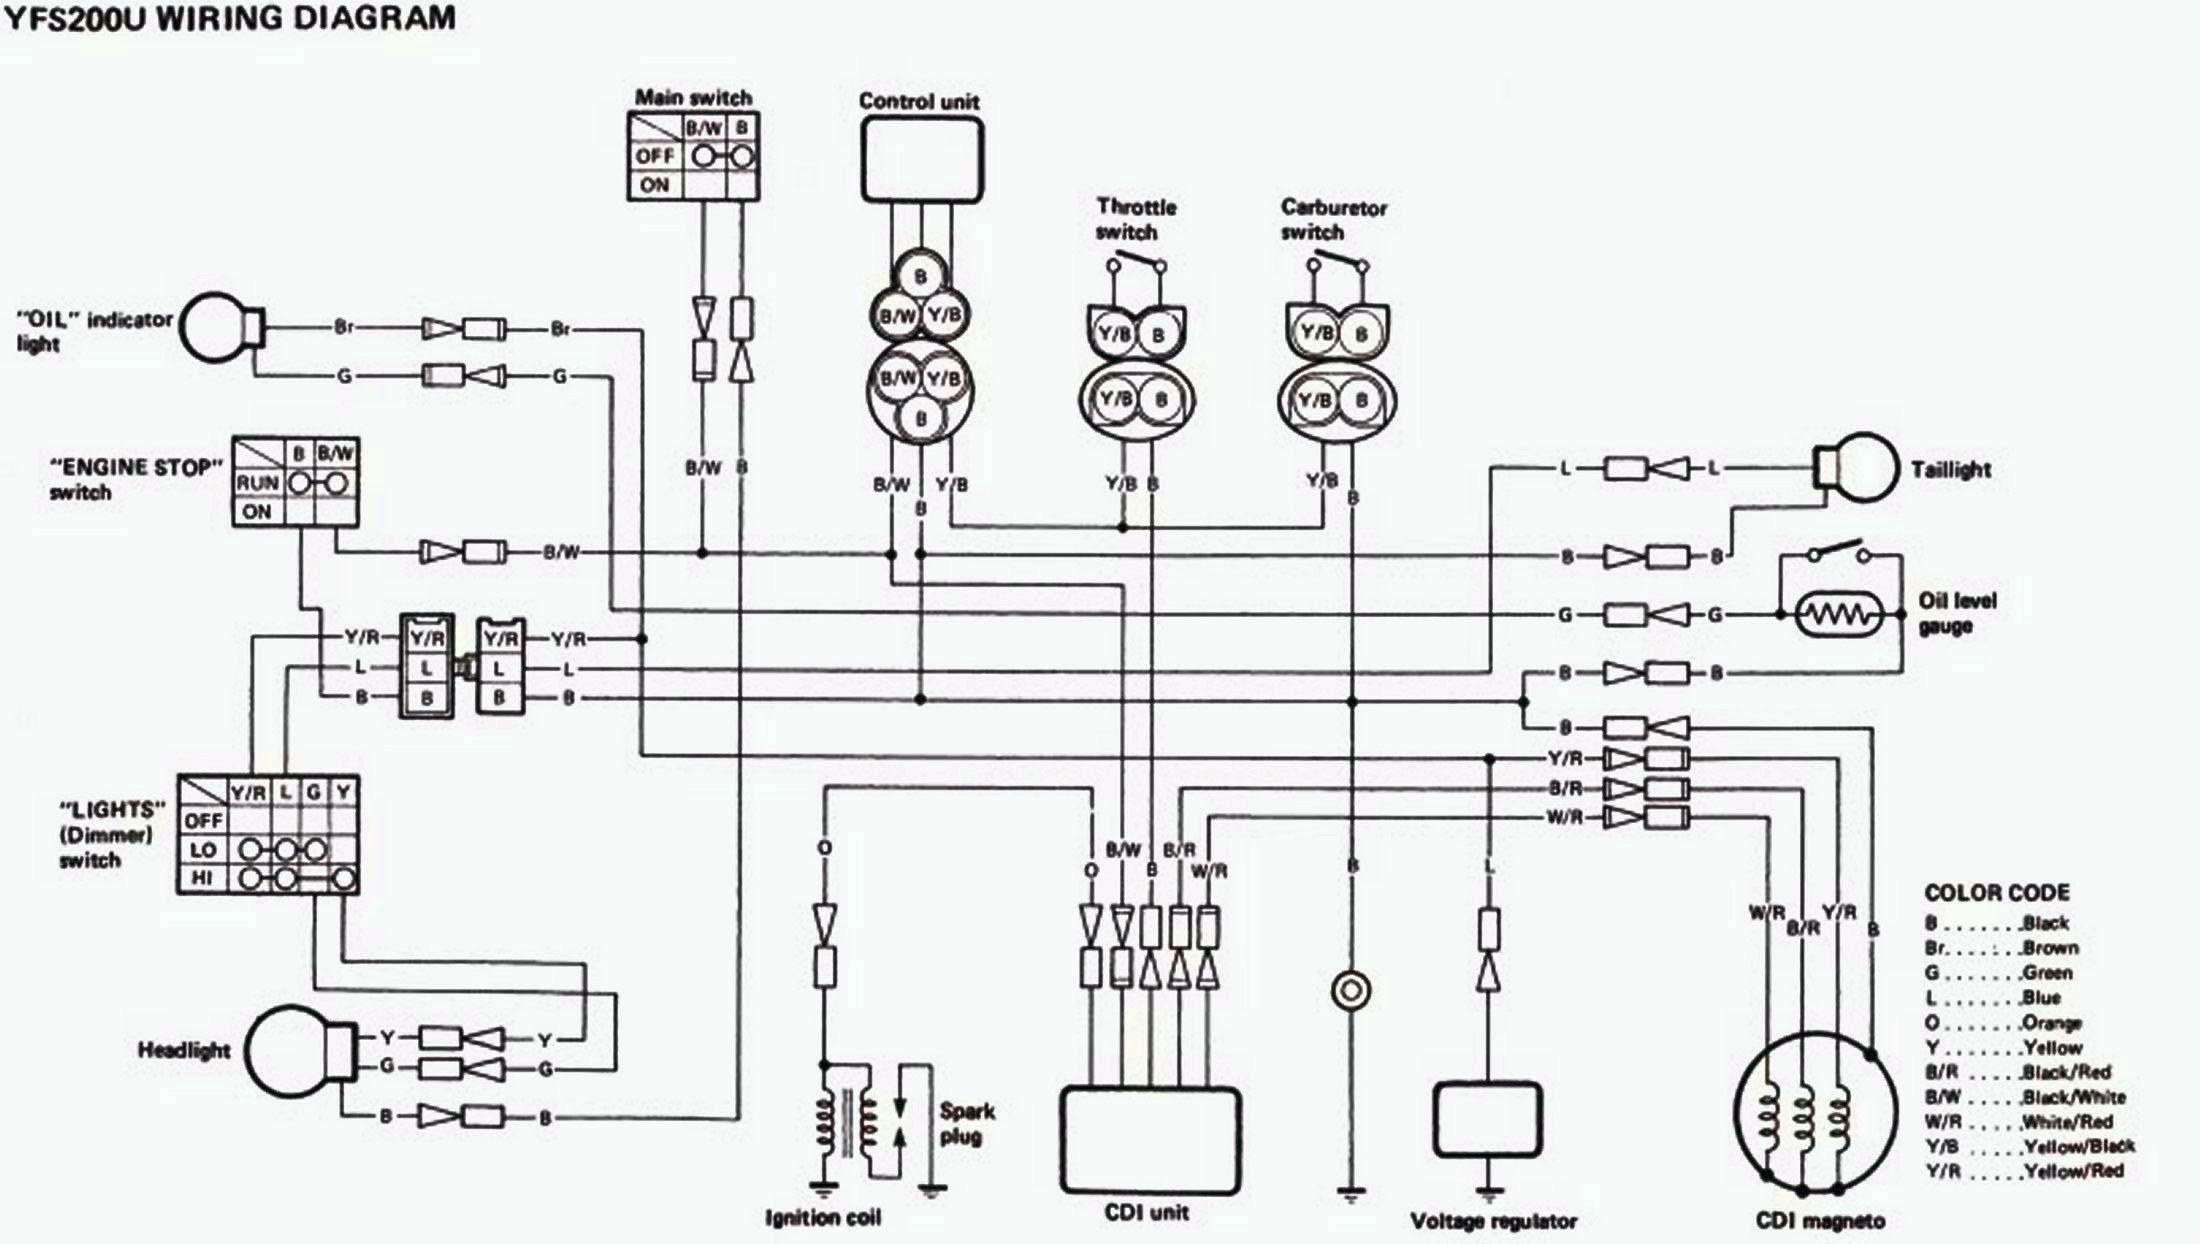 stock wiring diagrams- | blasterforum.com yamaha blaster wiring schematics yamaha blaster wiring diagram for 01 yfs200r